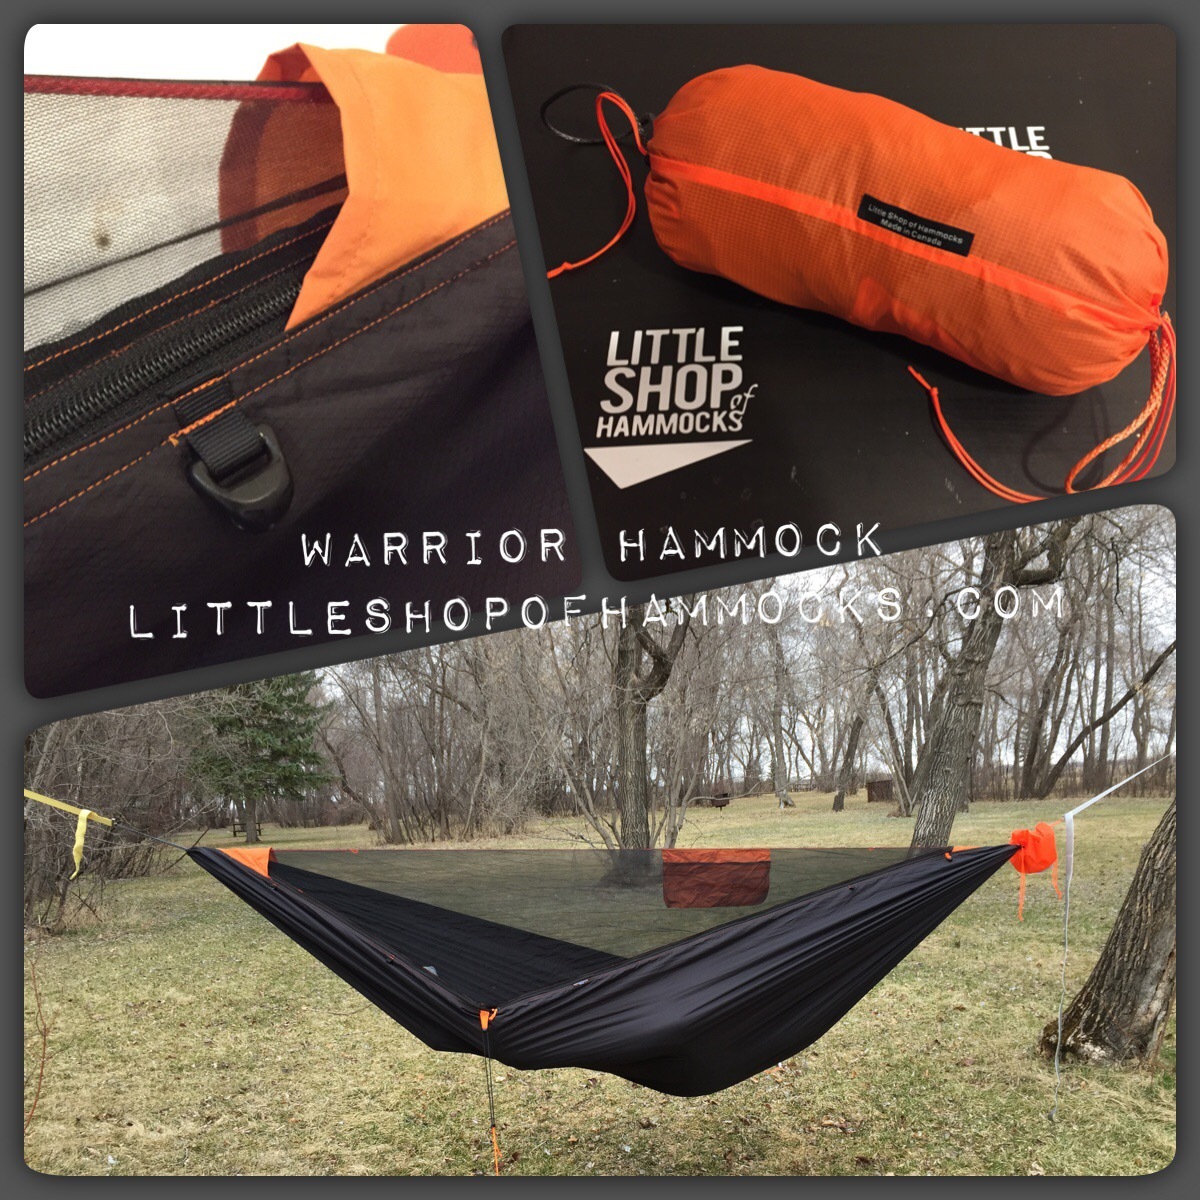 set hammock to mosquitos perfect attached performance way any lightweight outdoors from carry fits net keep noseeums bug out mosquito and product easy up the pouch delivered foot